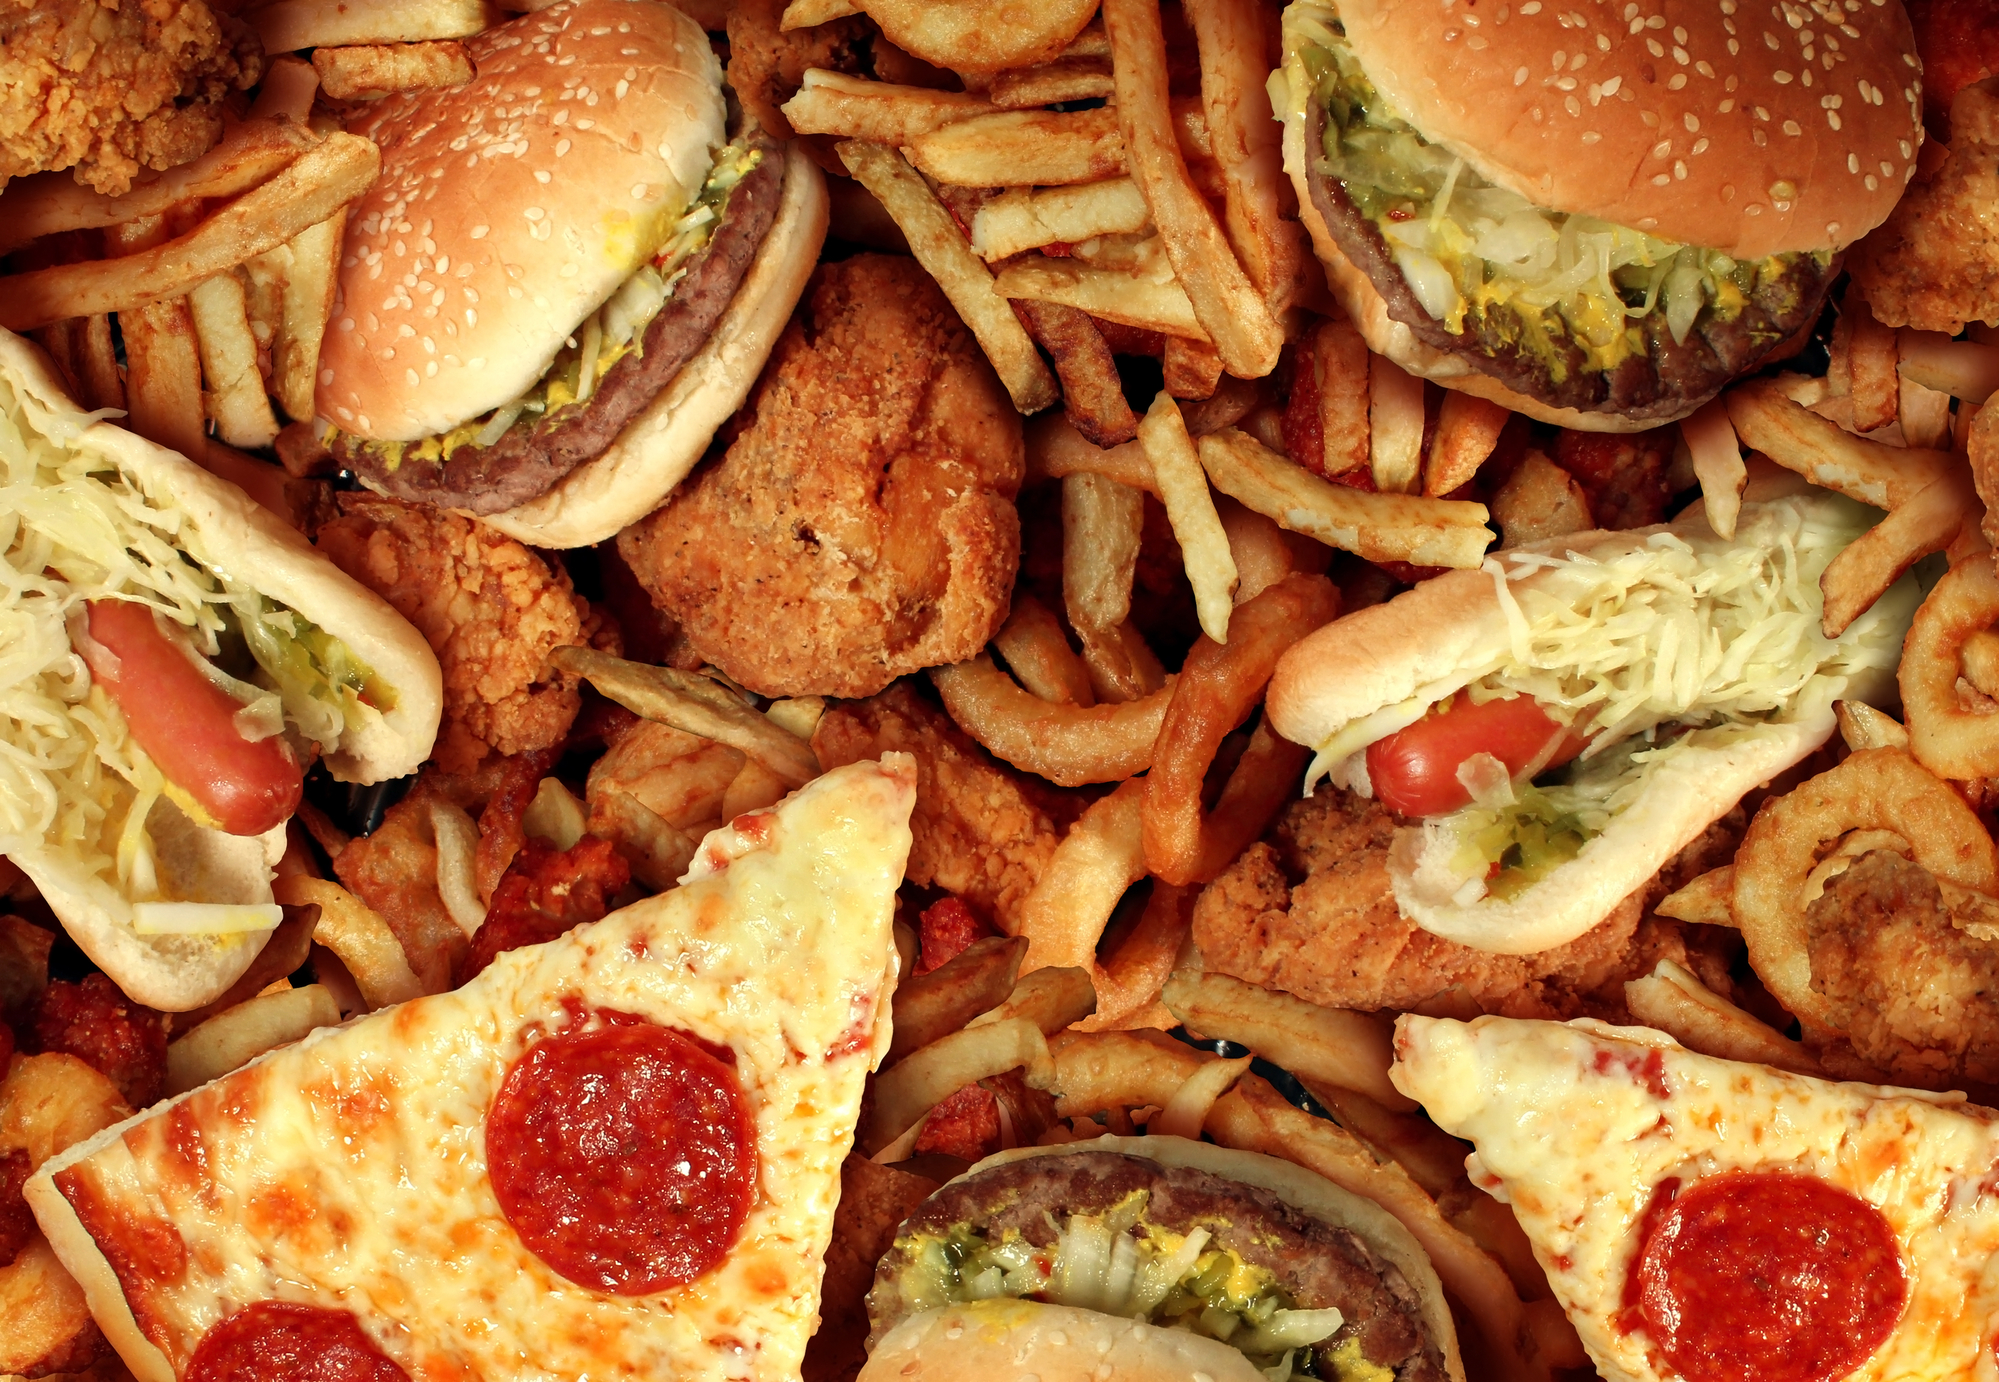 Fast food that causes IBS symptoms and abdominal pain